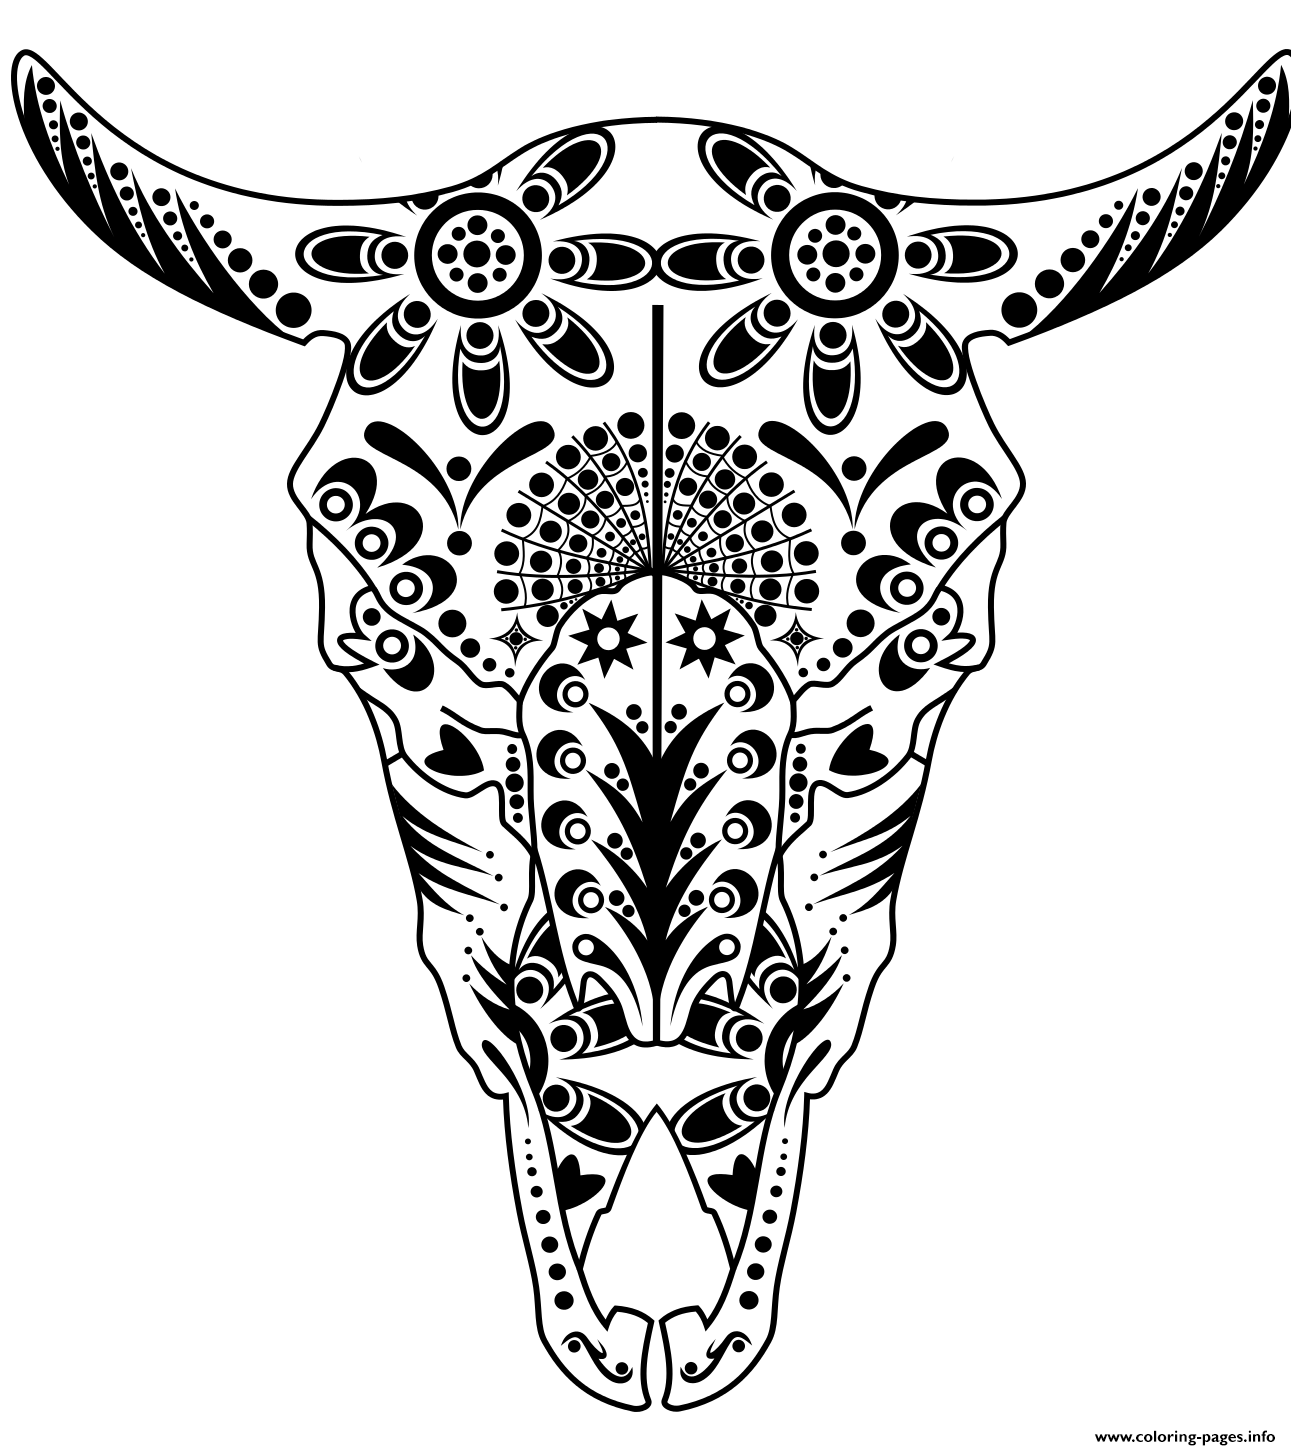 Cow Sugar Skull Pitbull Advanced Calavera Coloring Pages Print Download